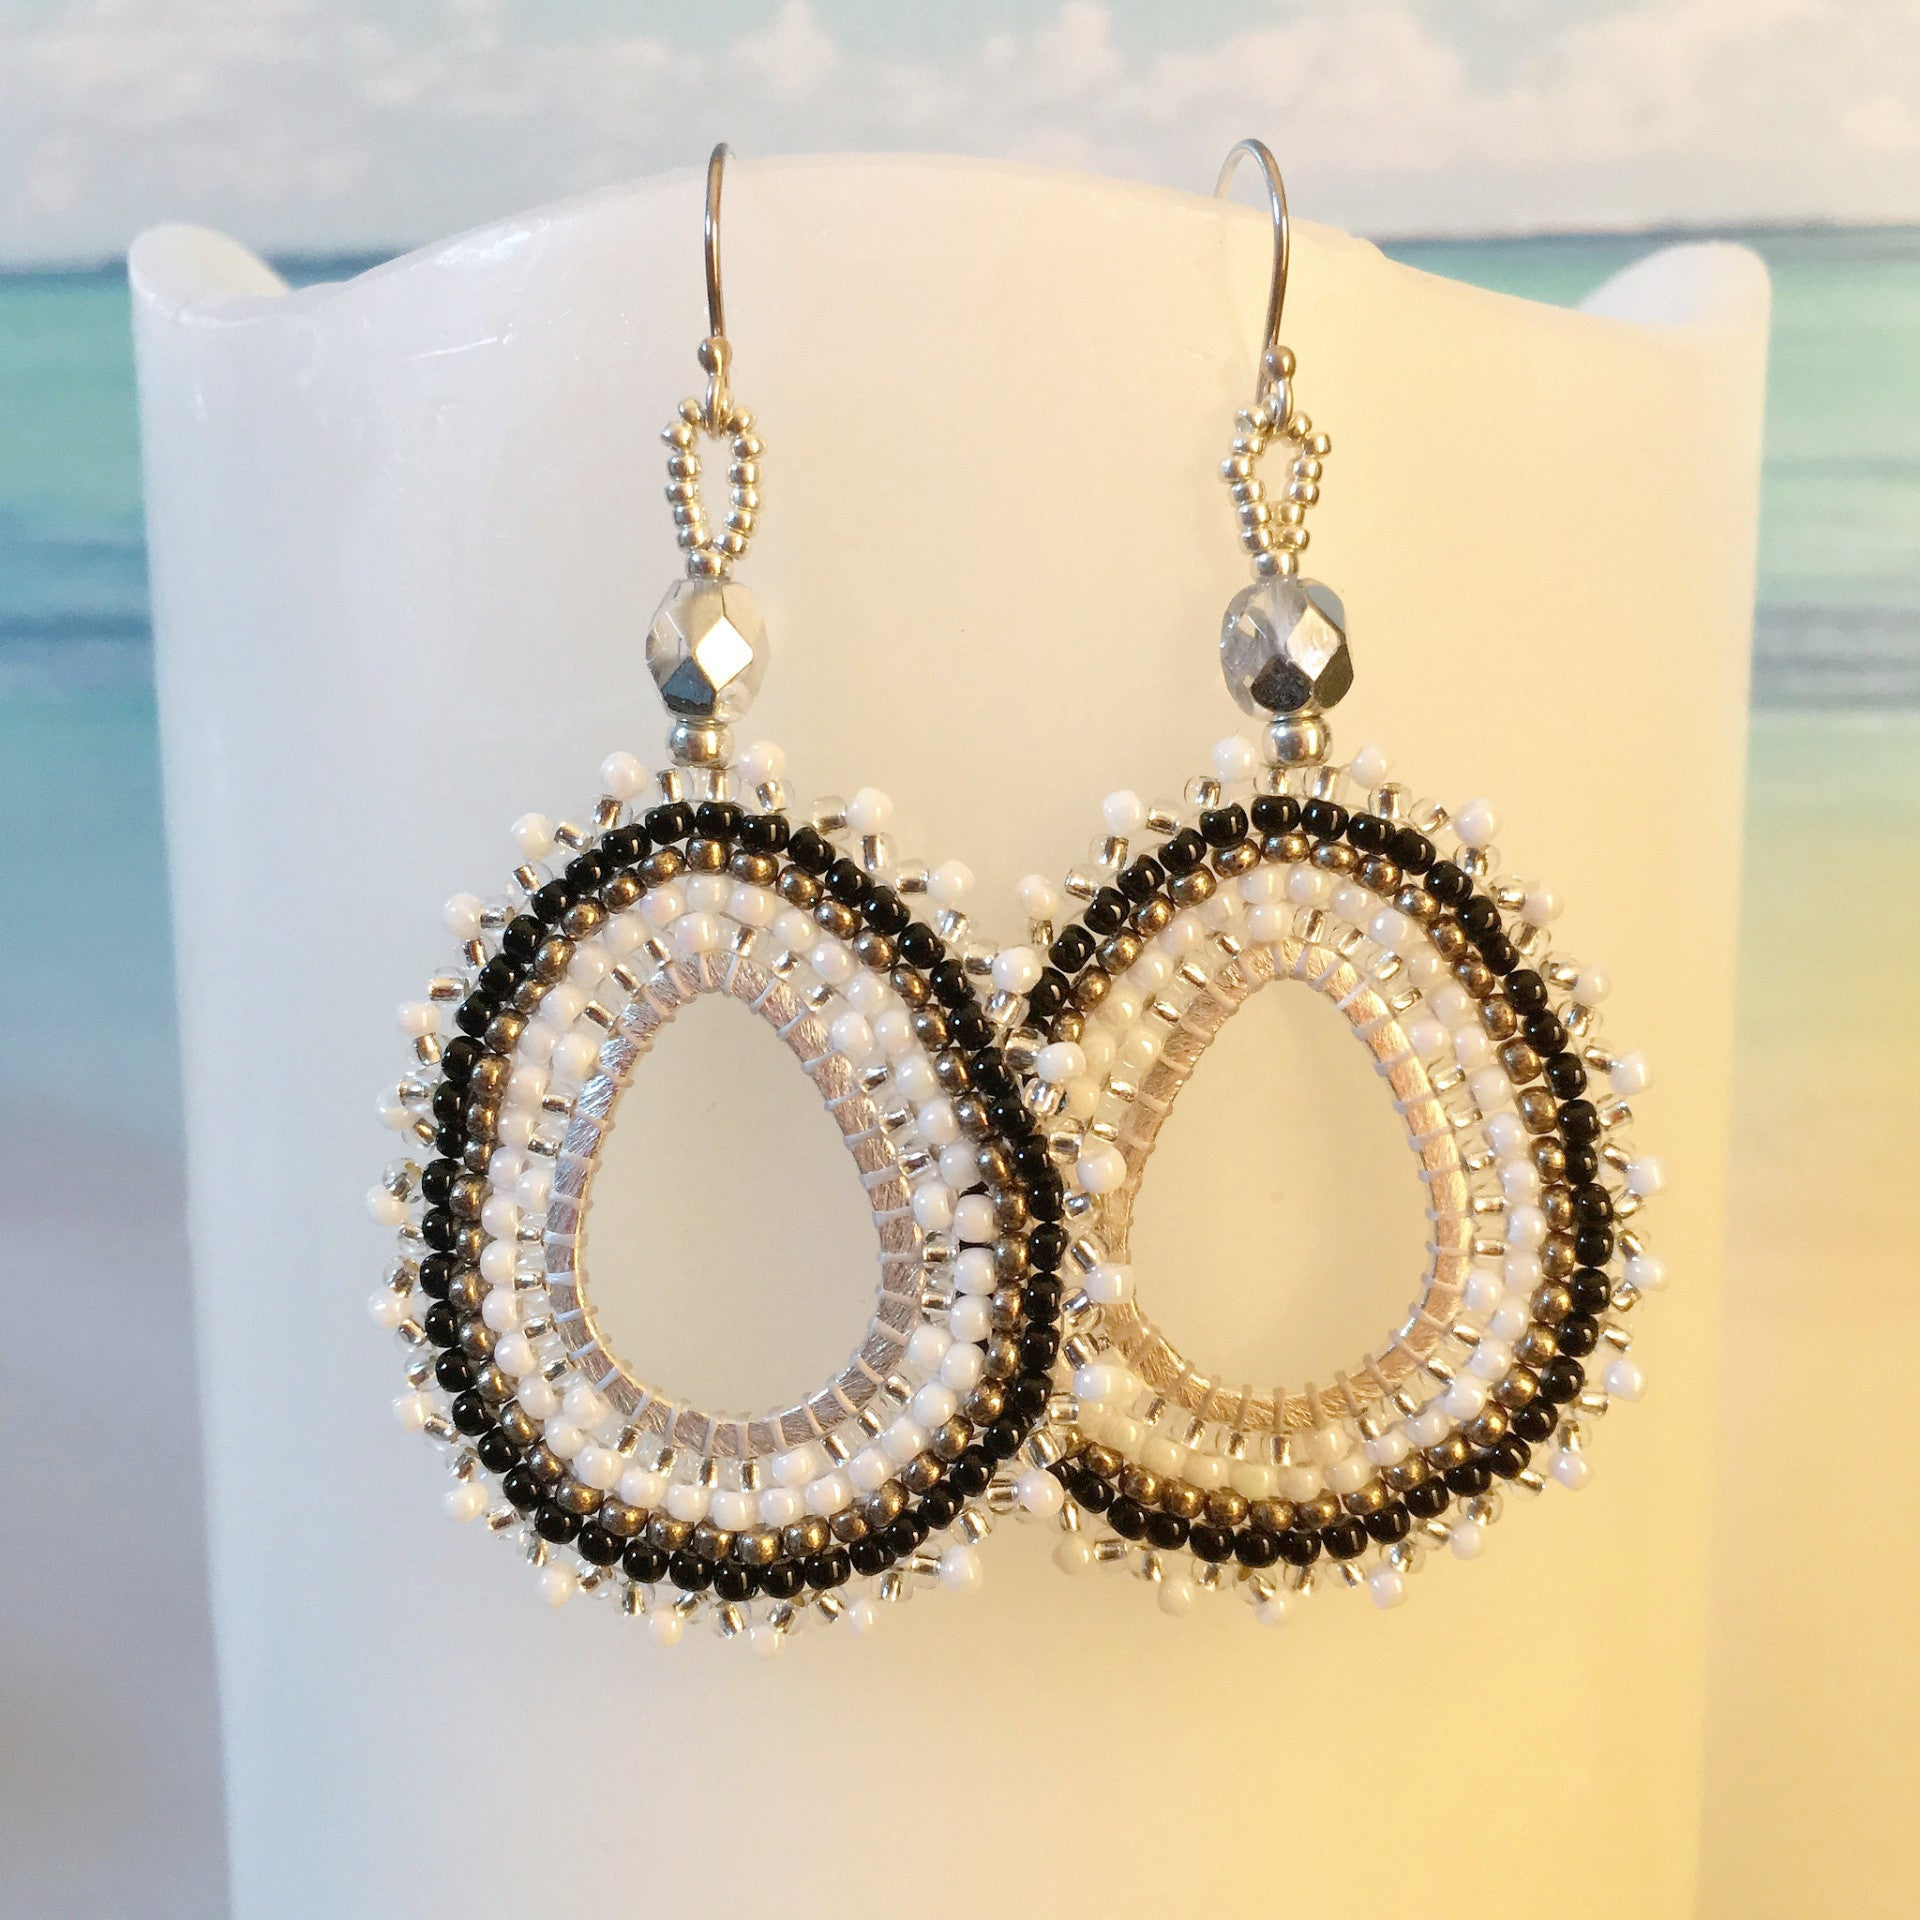 Black silver white handmade beaded oval teardrop earrings long lightweight